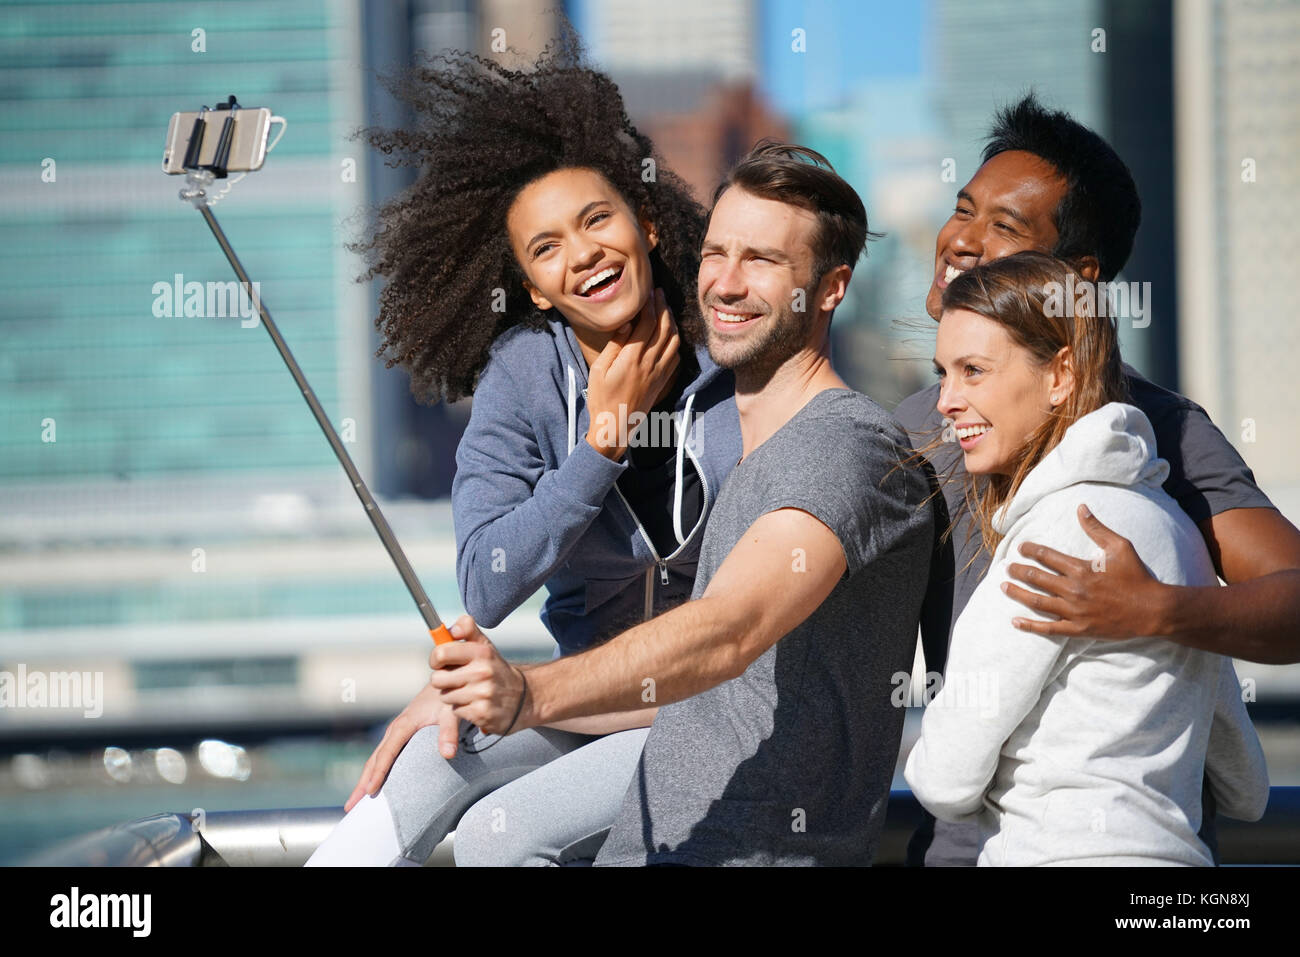 Group of friends taking selfie picture, Manhattan in background - Stock Image